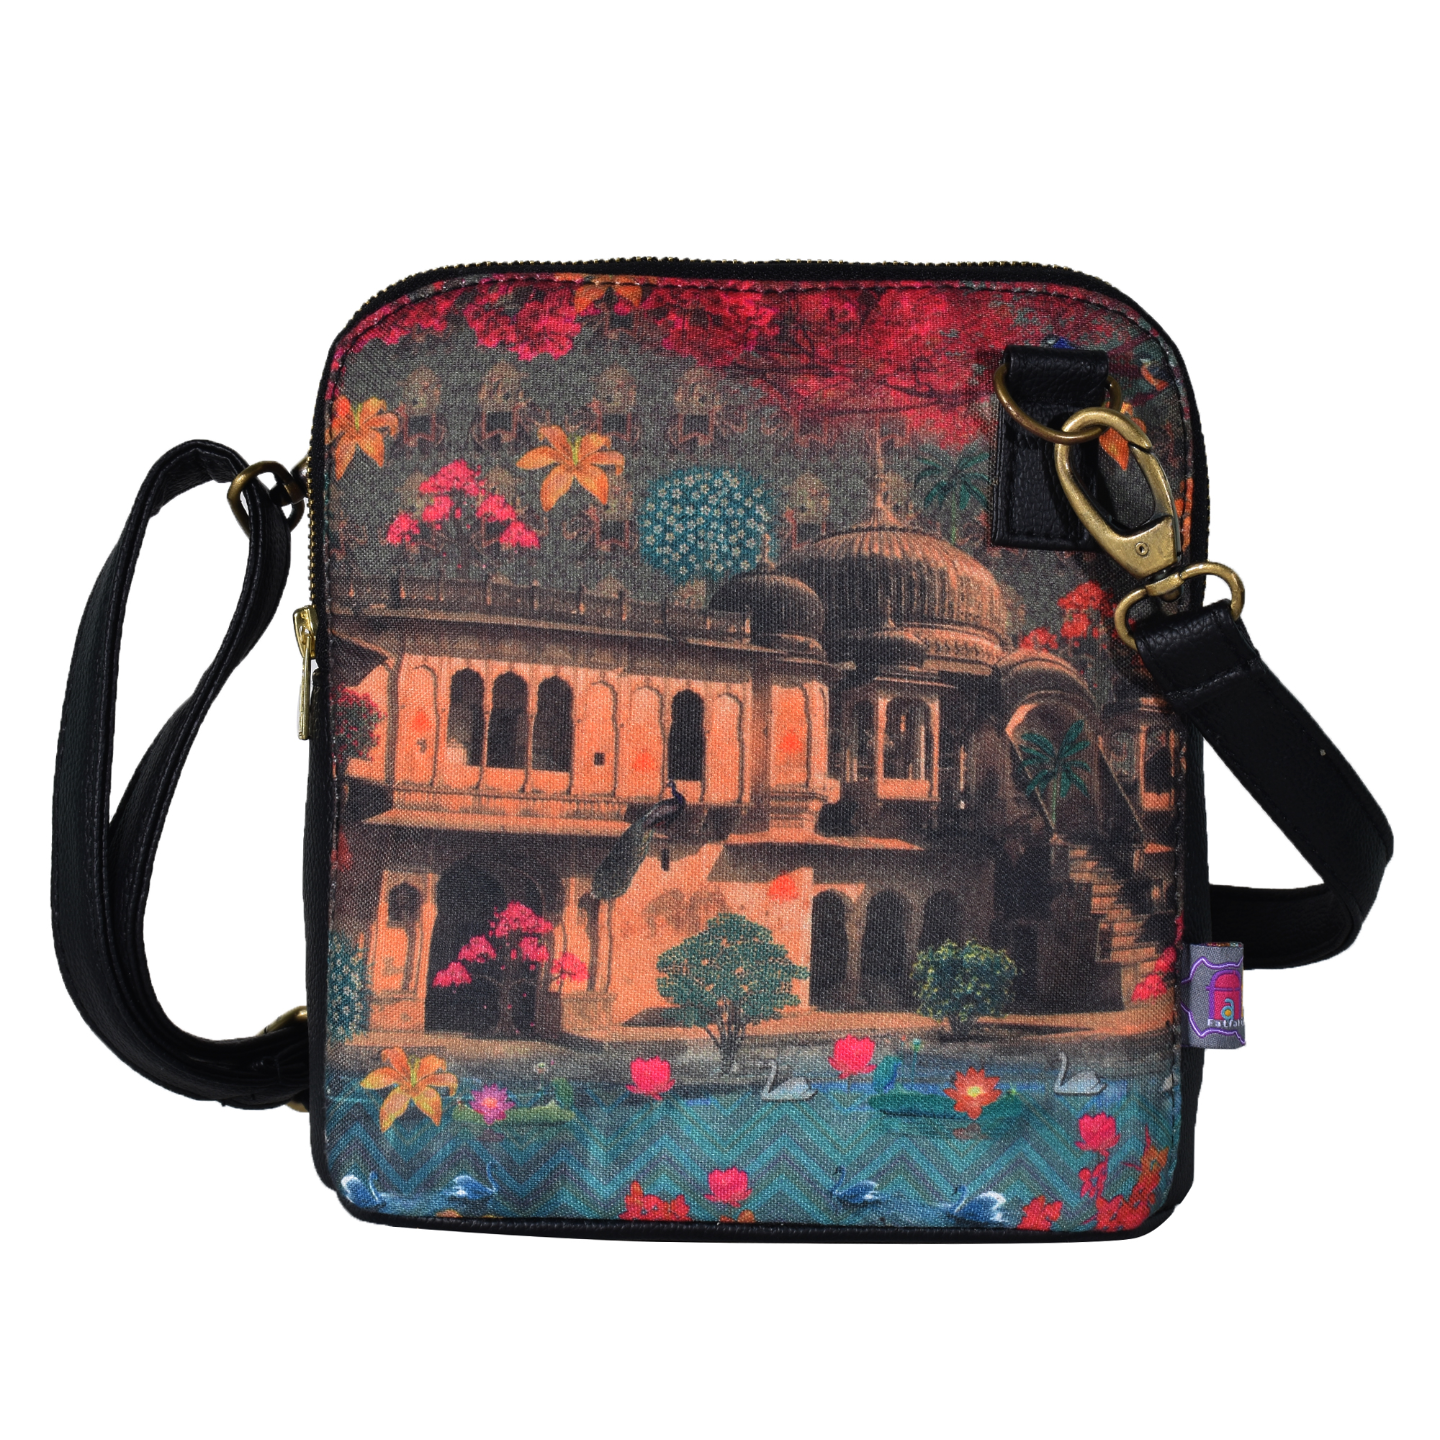 Fort in a Lake Crossbody Bag For Women And Girls